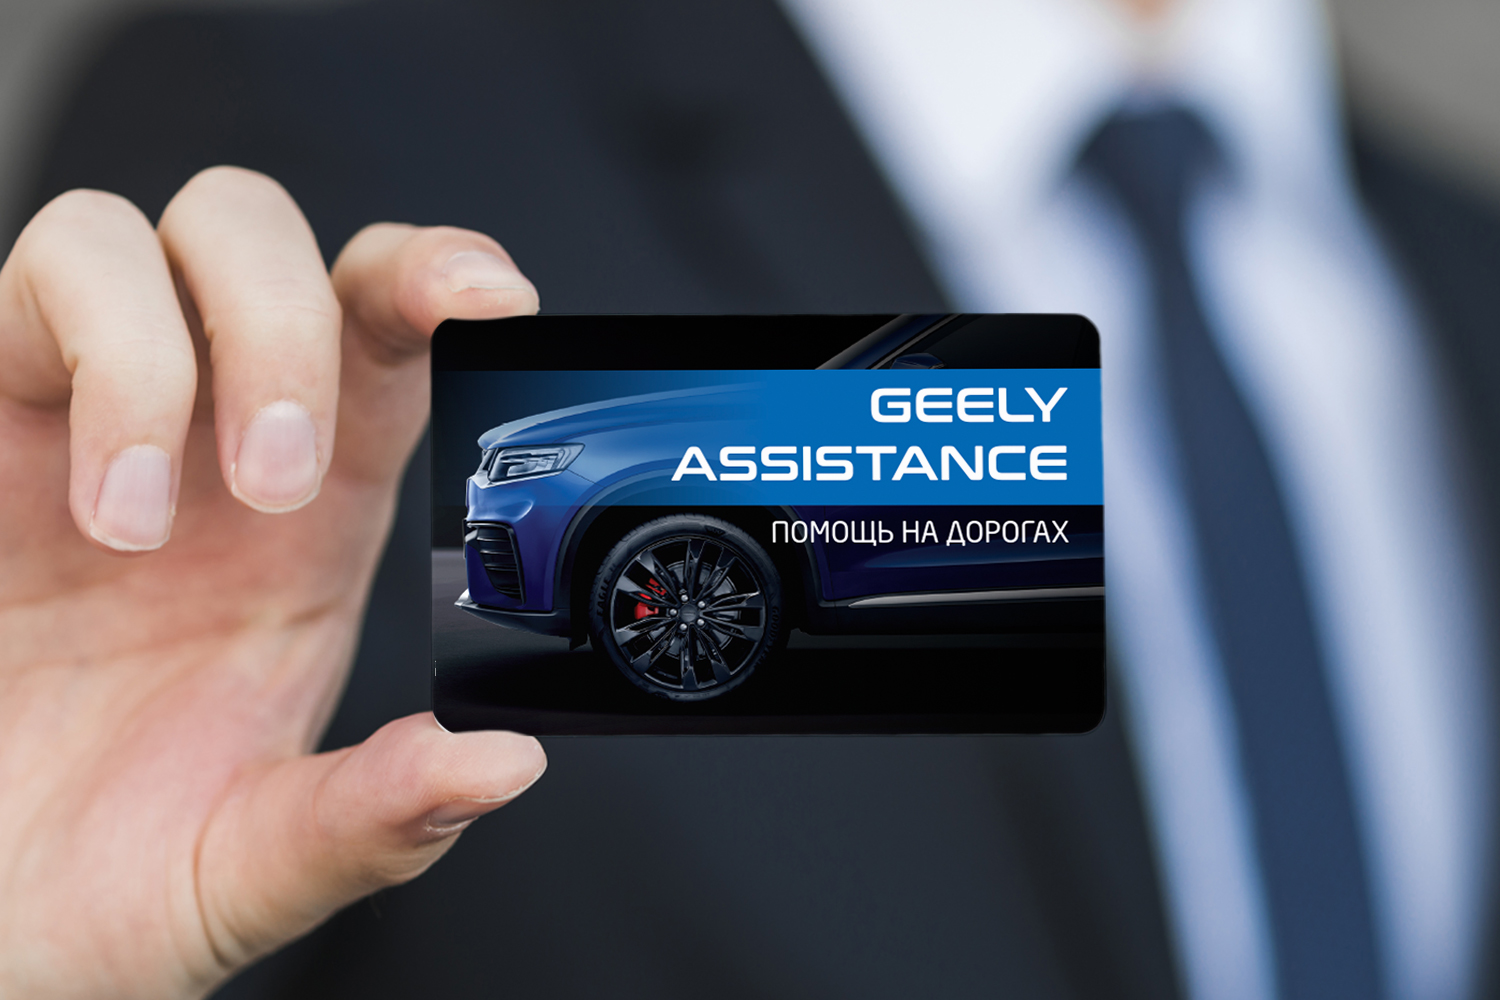 Geely Assistance